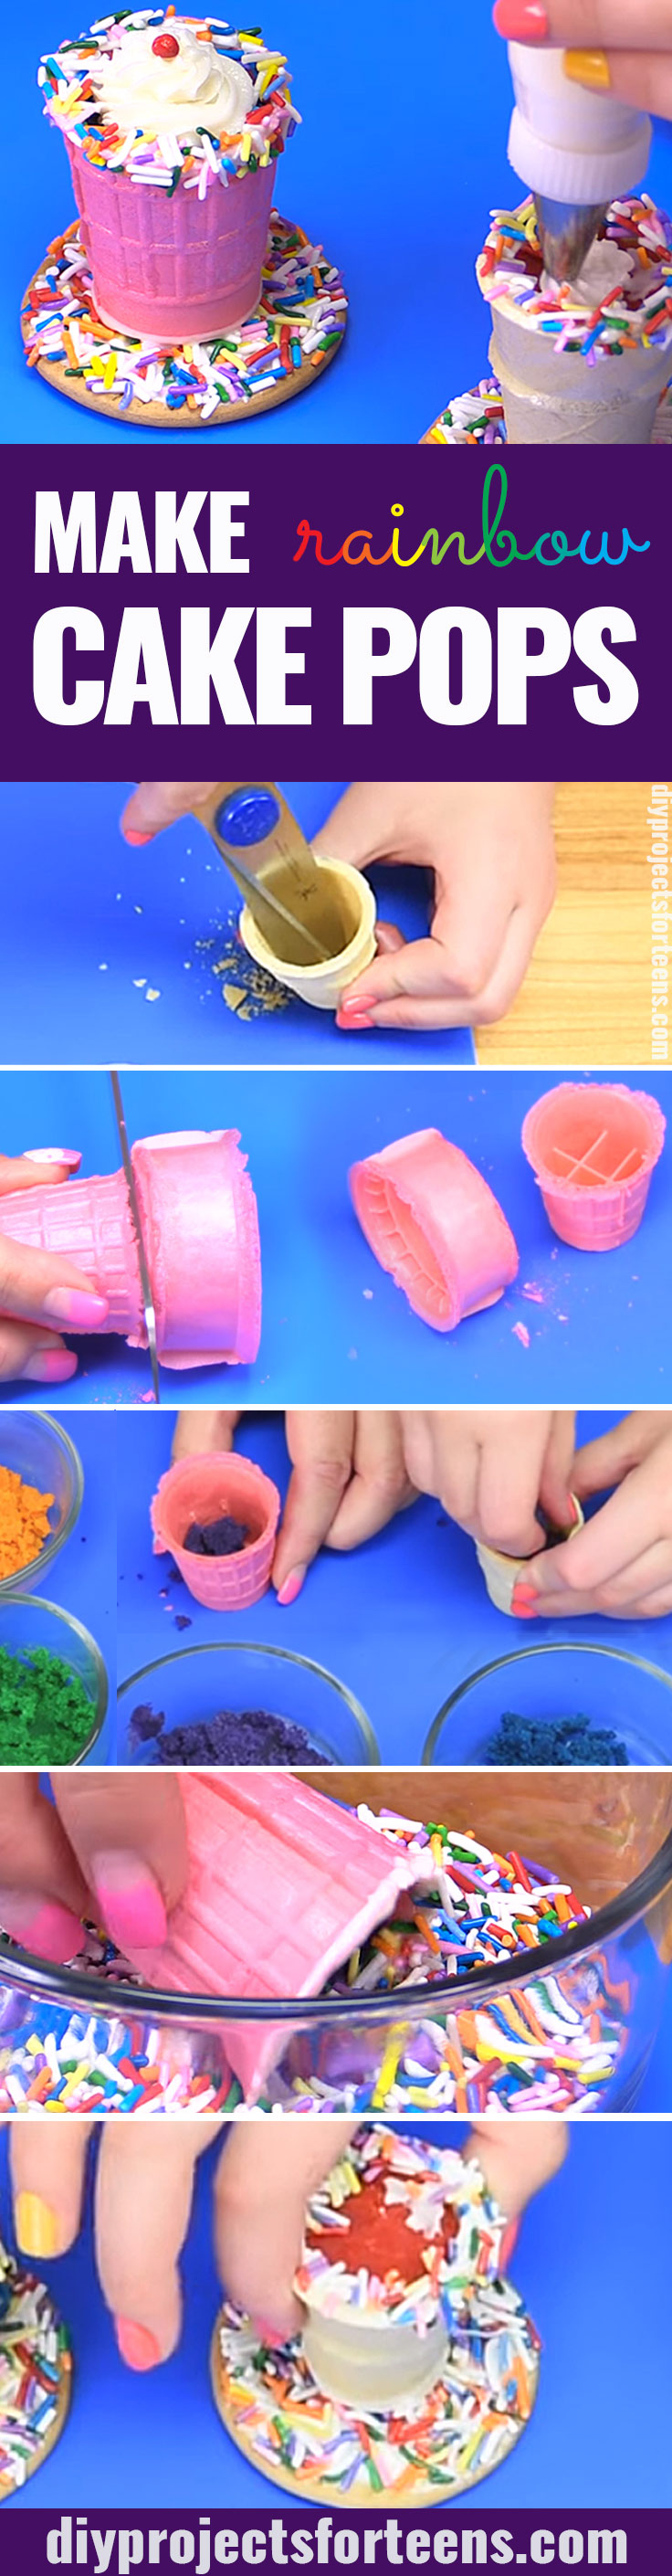 How To Make Cake Pops Youtube